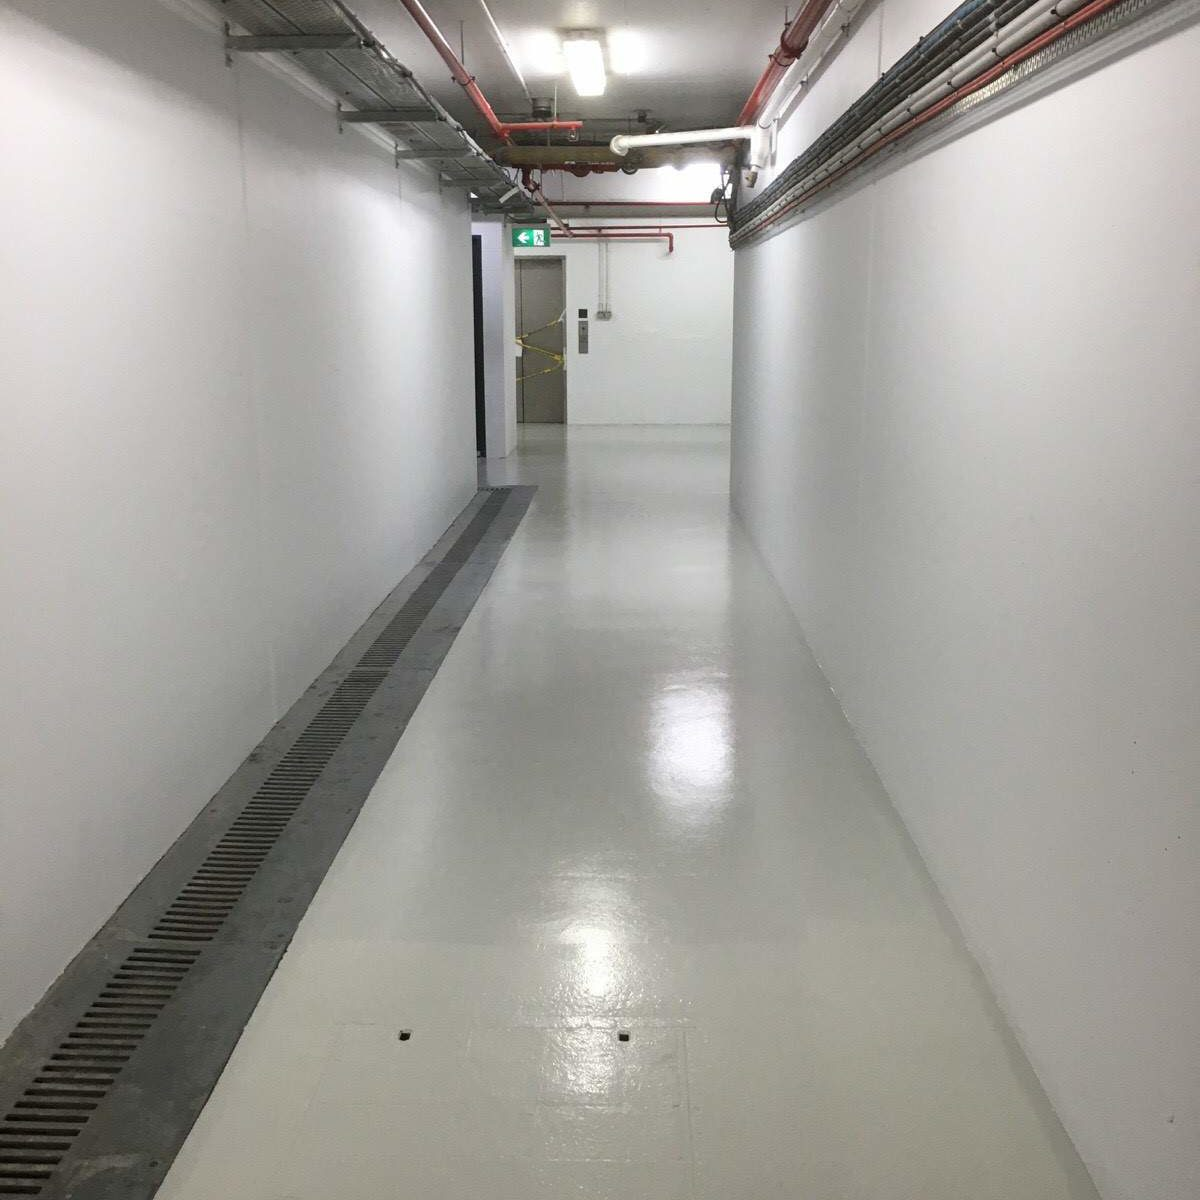 corridor after surface coating